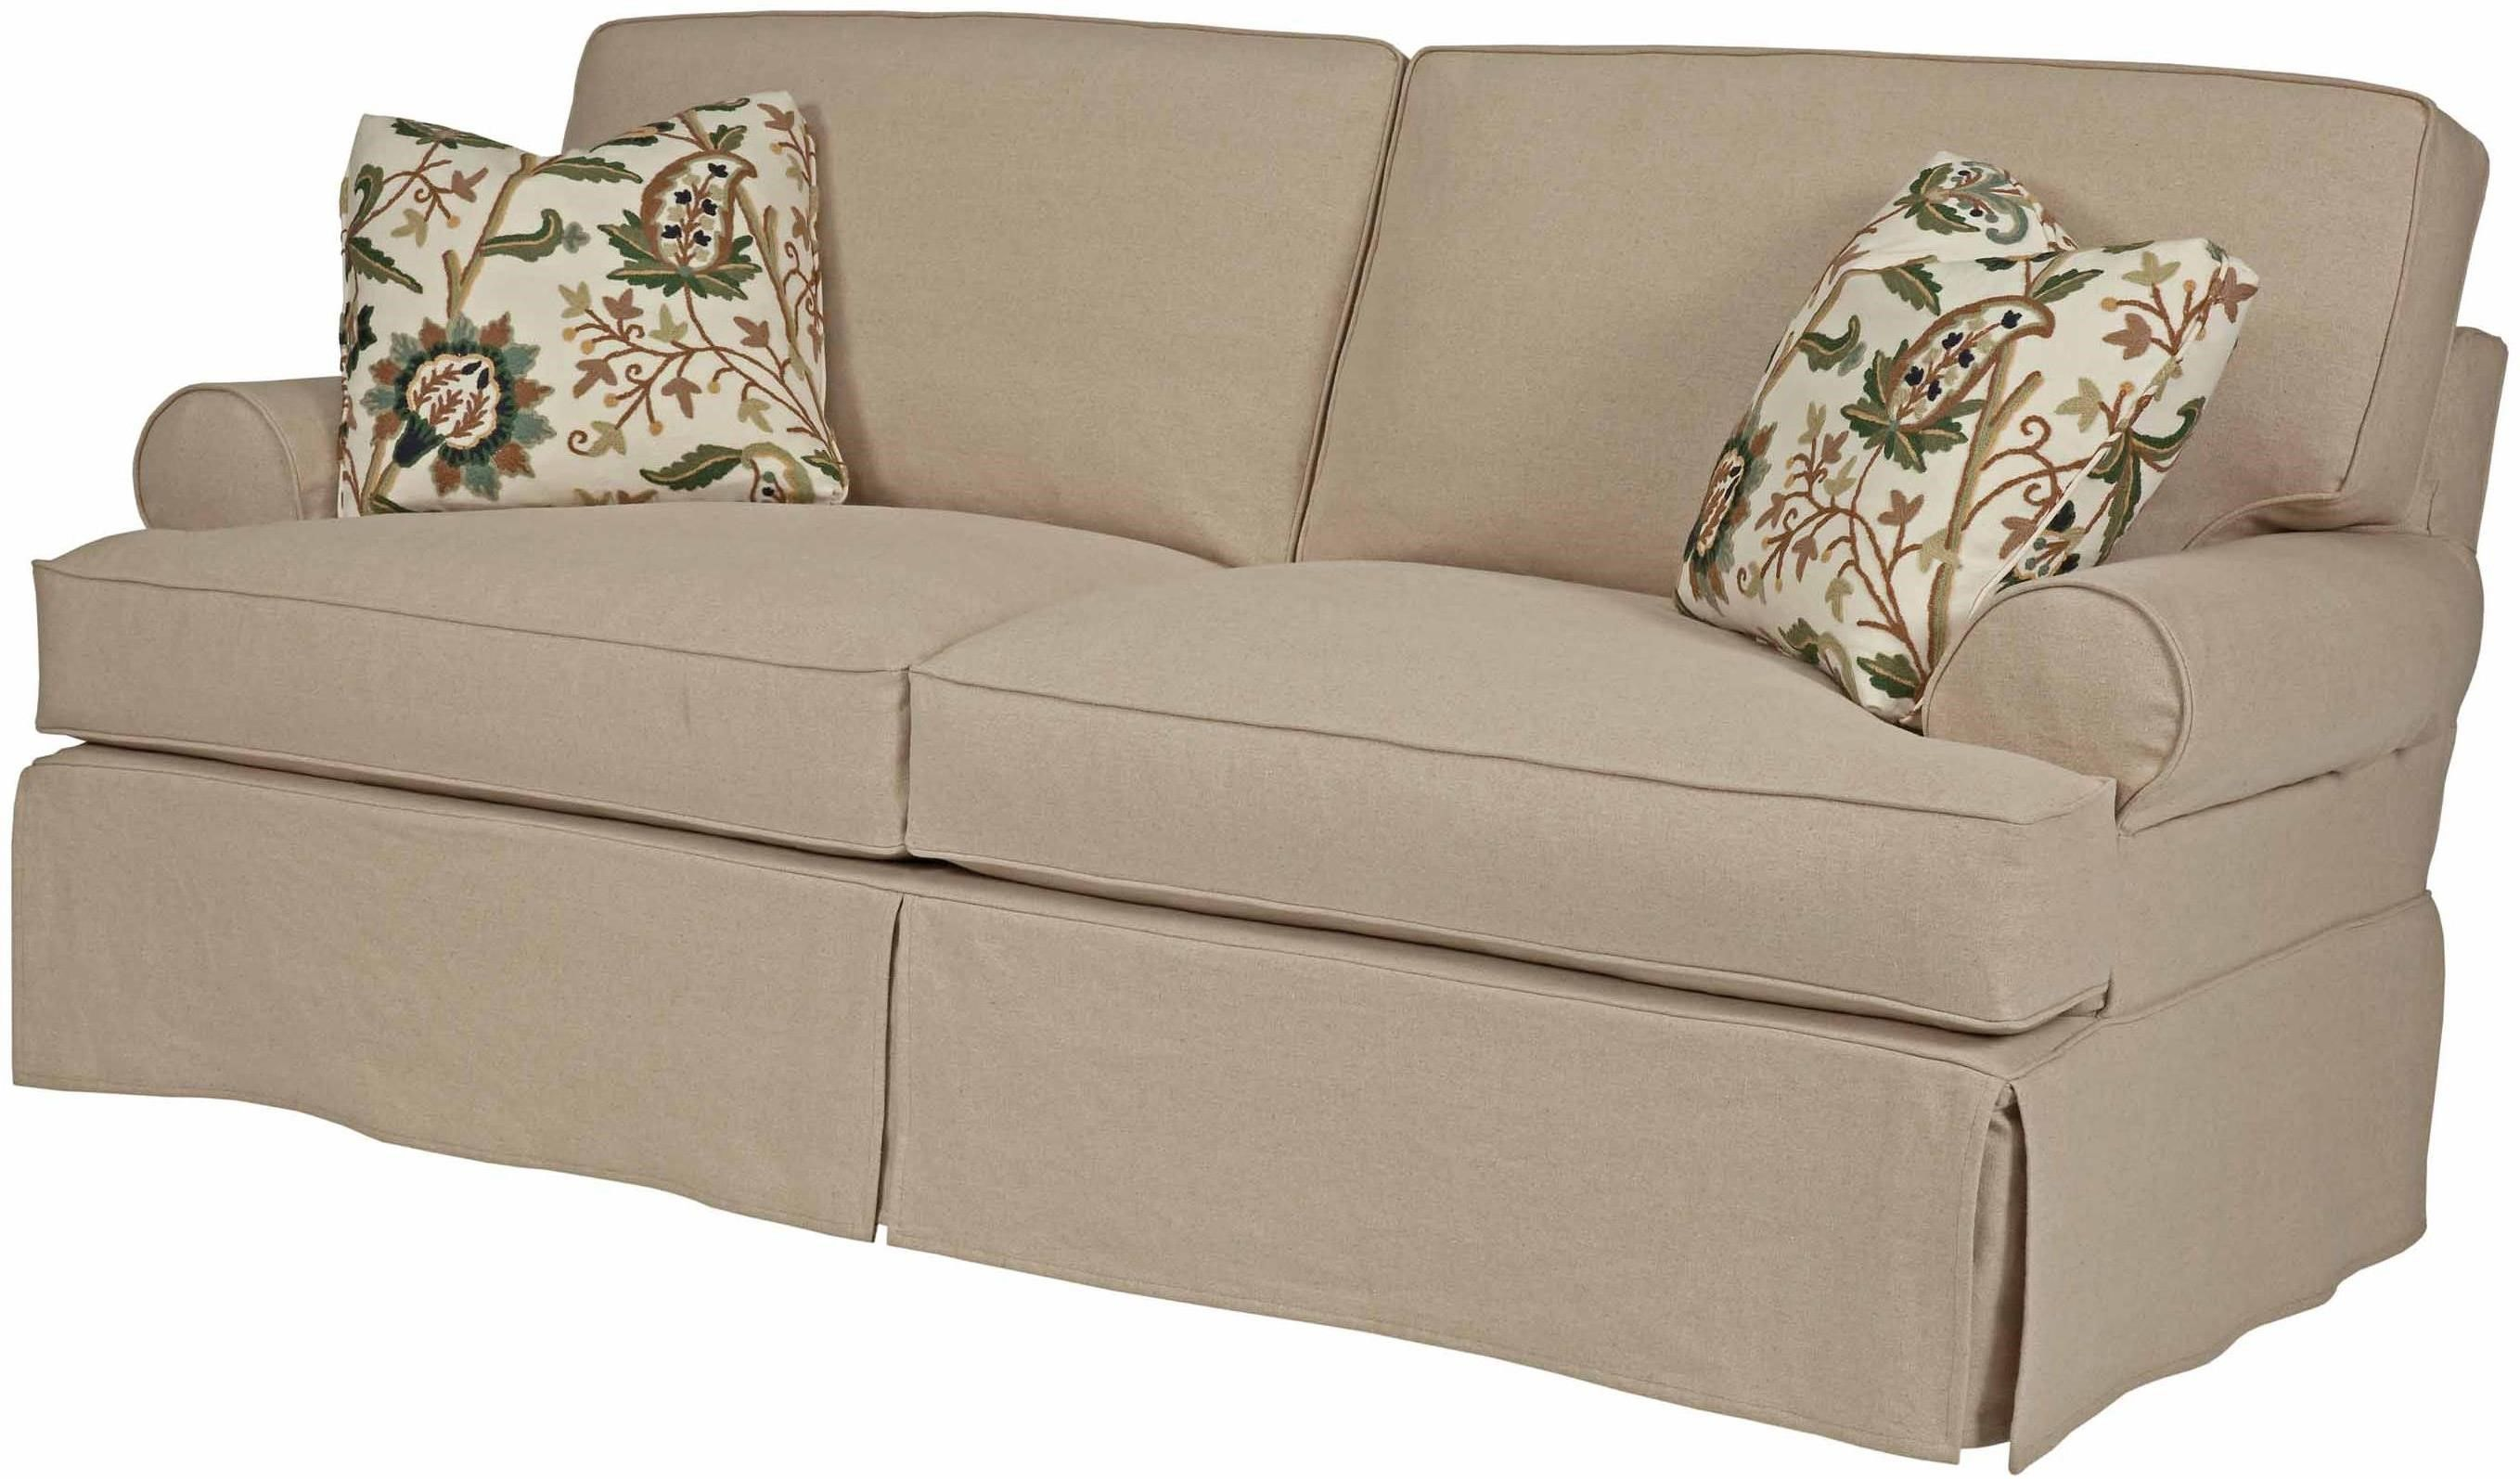 best 3 cushion sofa slipcover ideas-Top 3 Cushion sofa Slipcover Layout